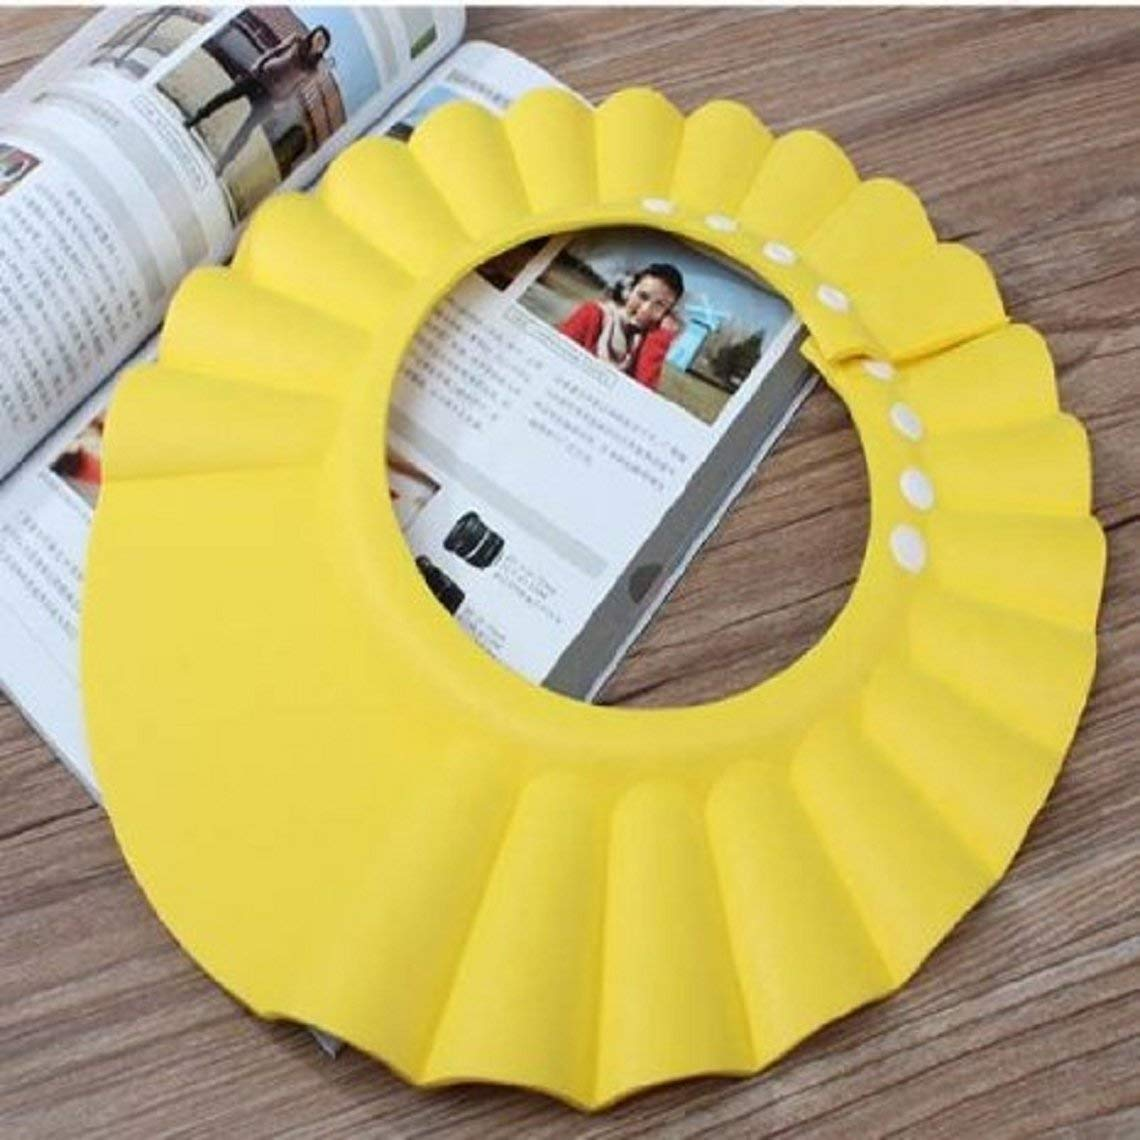 Yevison 1Pc Safe Shampoo Shower Bathing Bath Protect Soft Cap Hat for Baby Yellow Durable and Useful